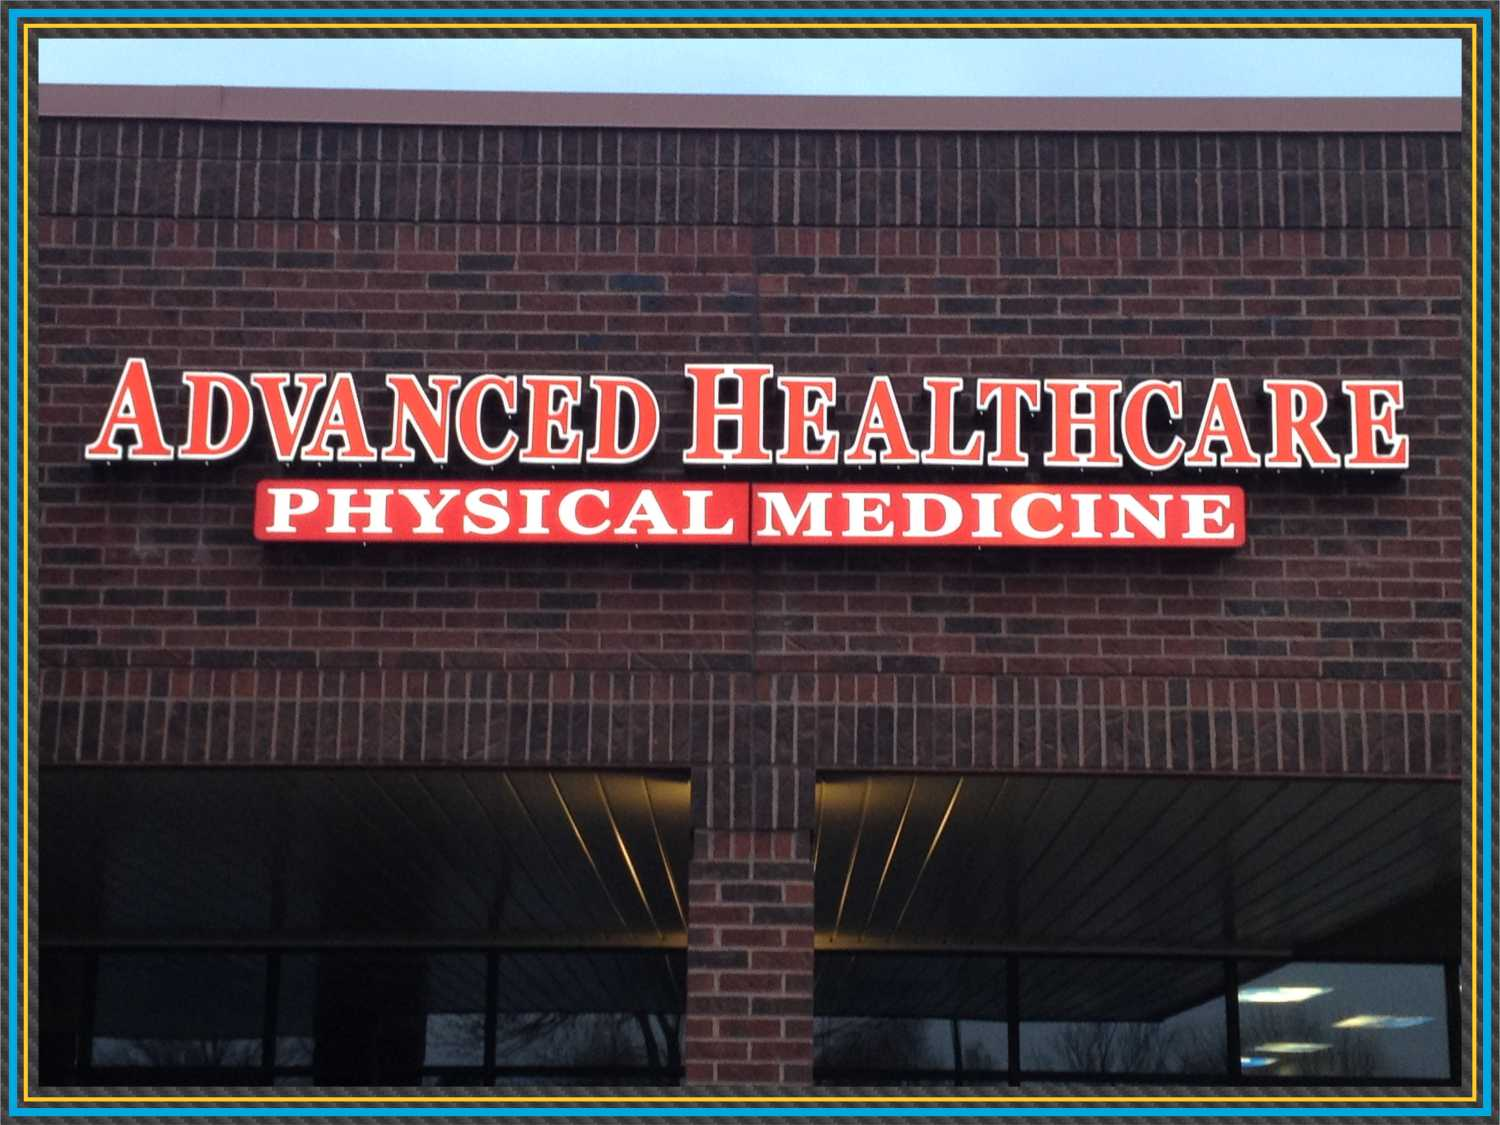 Advancee Healthcare Channel Letter Sign